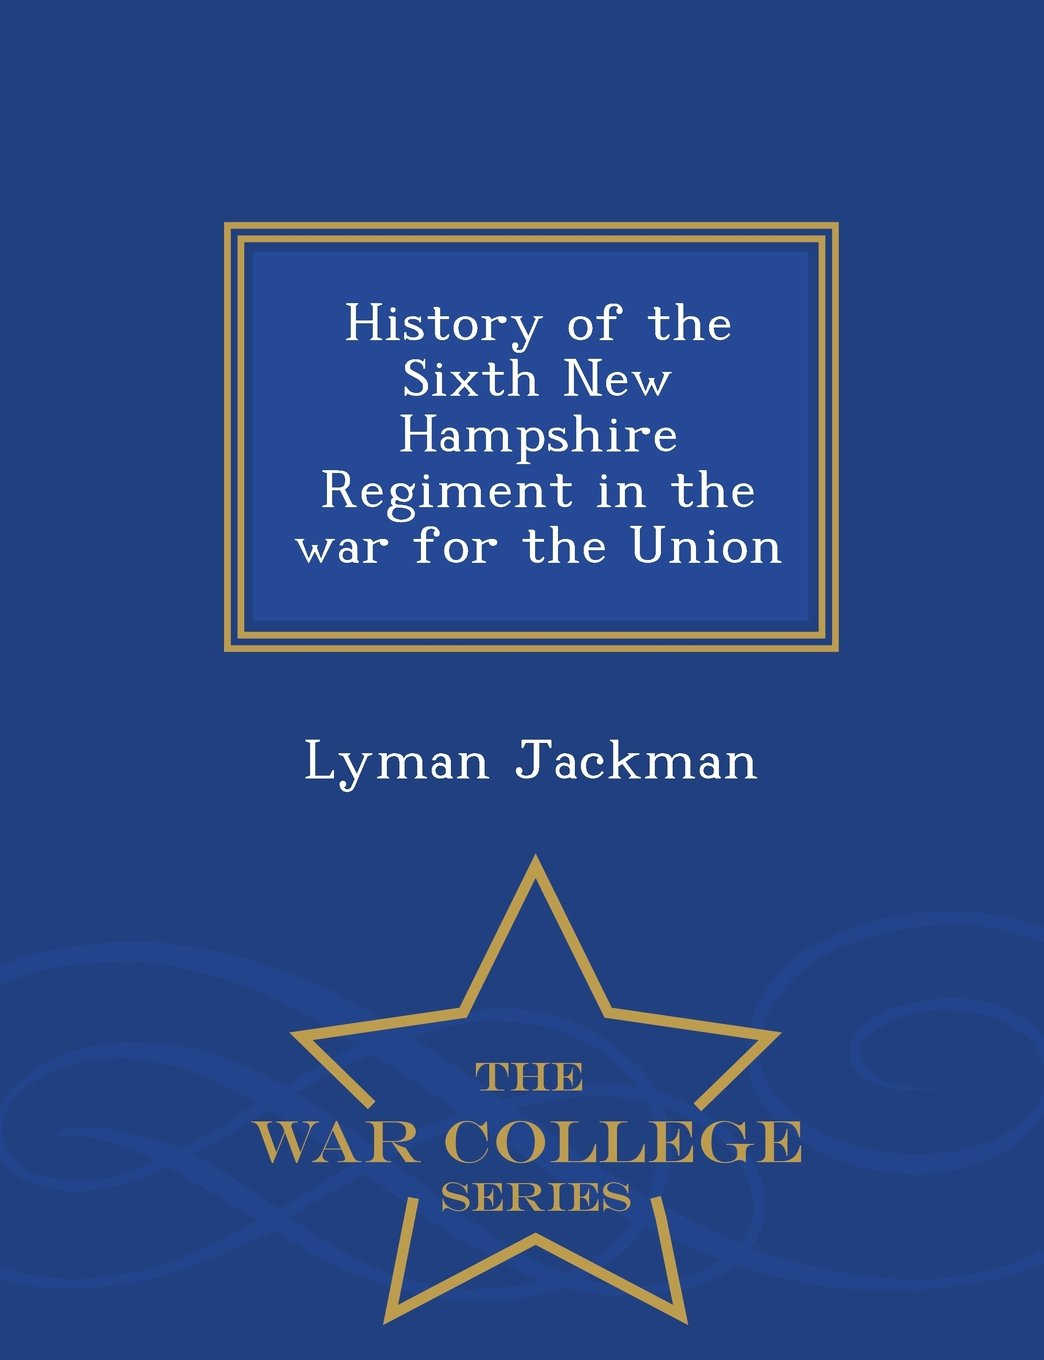 Download History of the Sixth New Hampshire Regiment in the war for the Union  - War College Series ebook